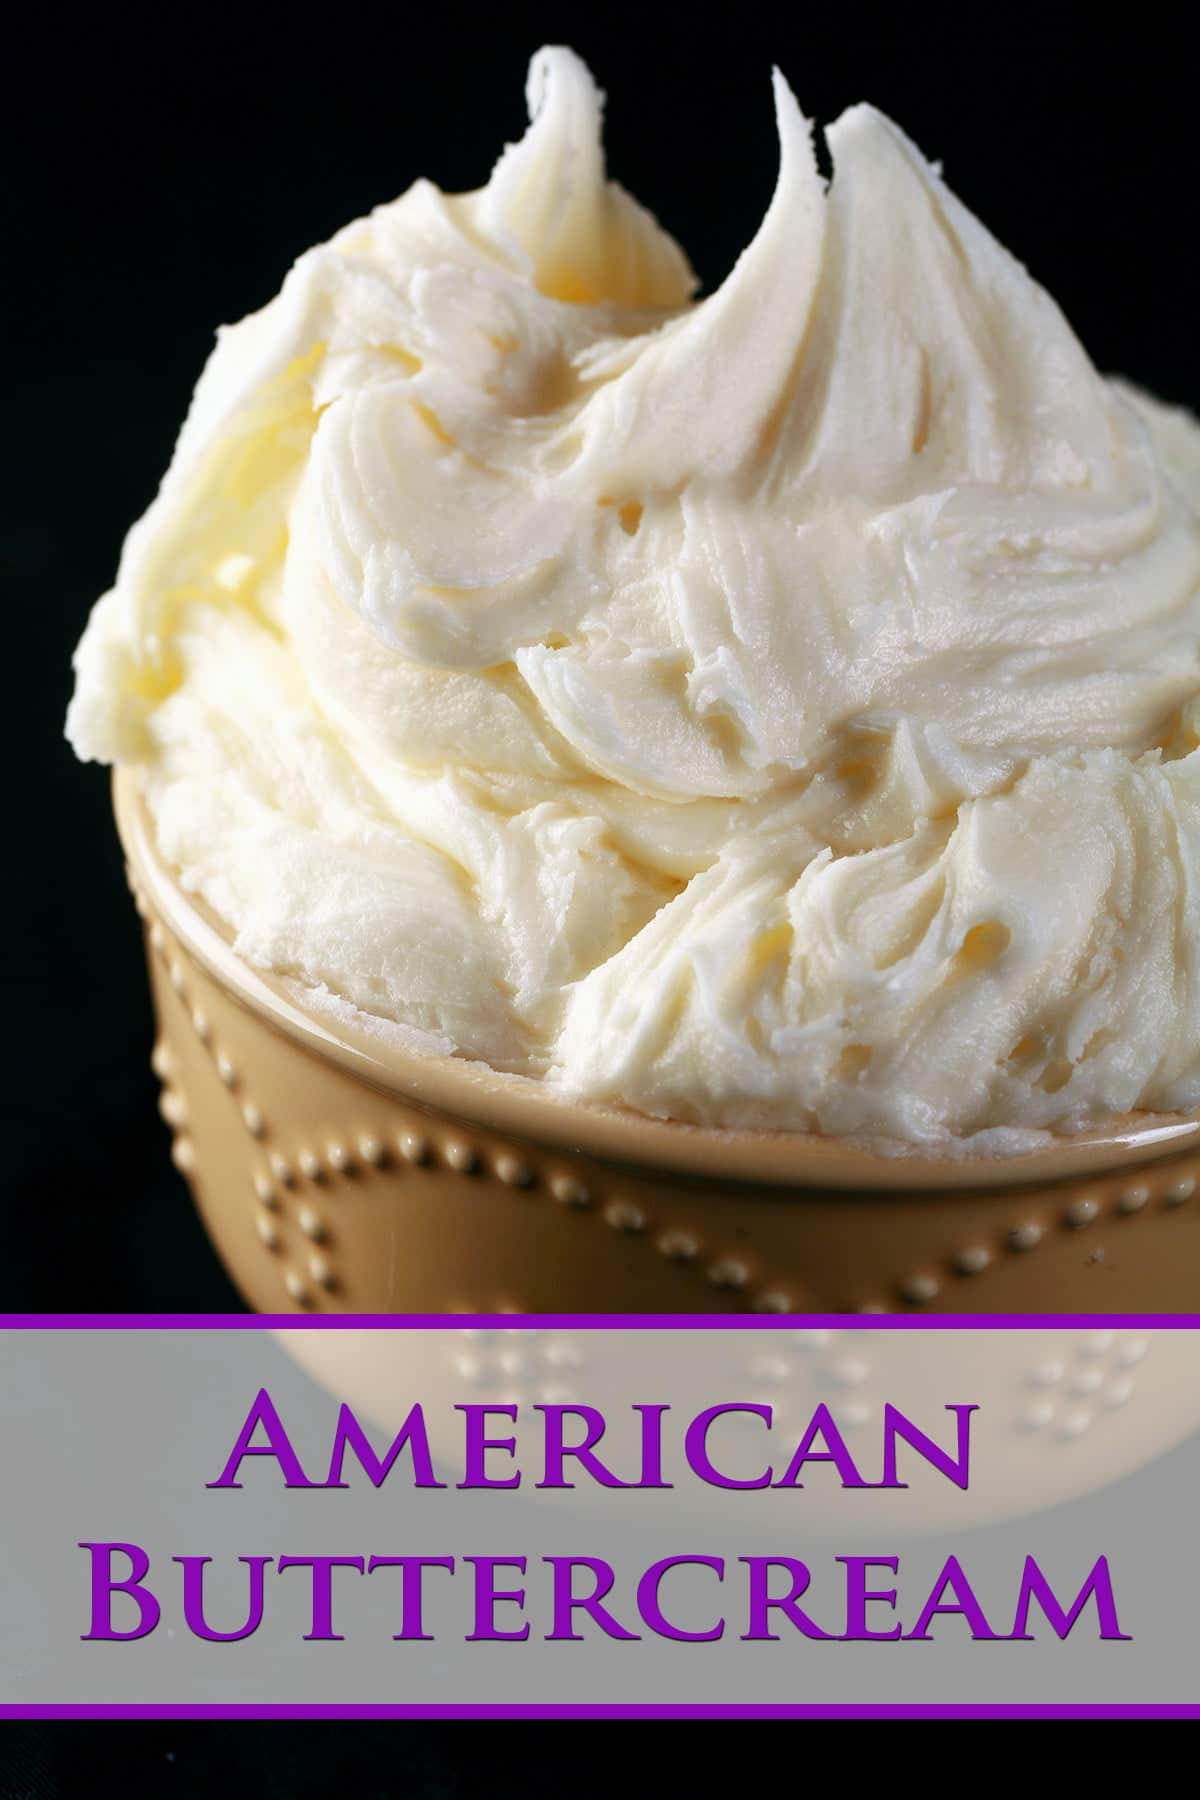 A bowl full of - and mounded high with - off white American Buttercream is shown in front of a black background.